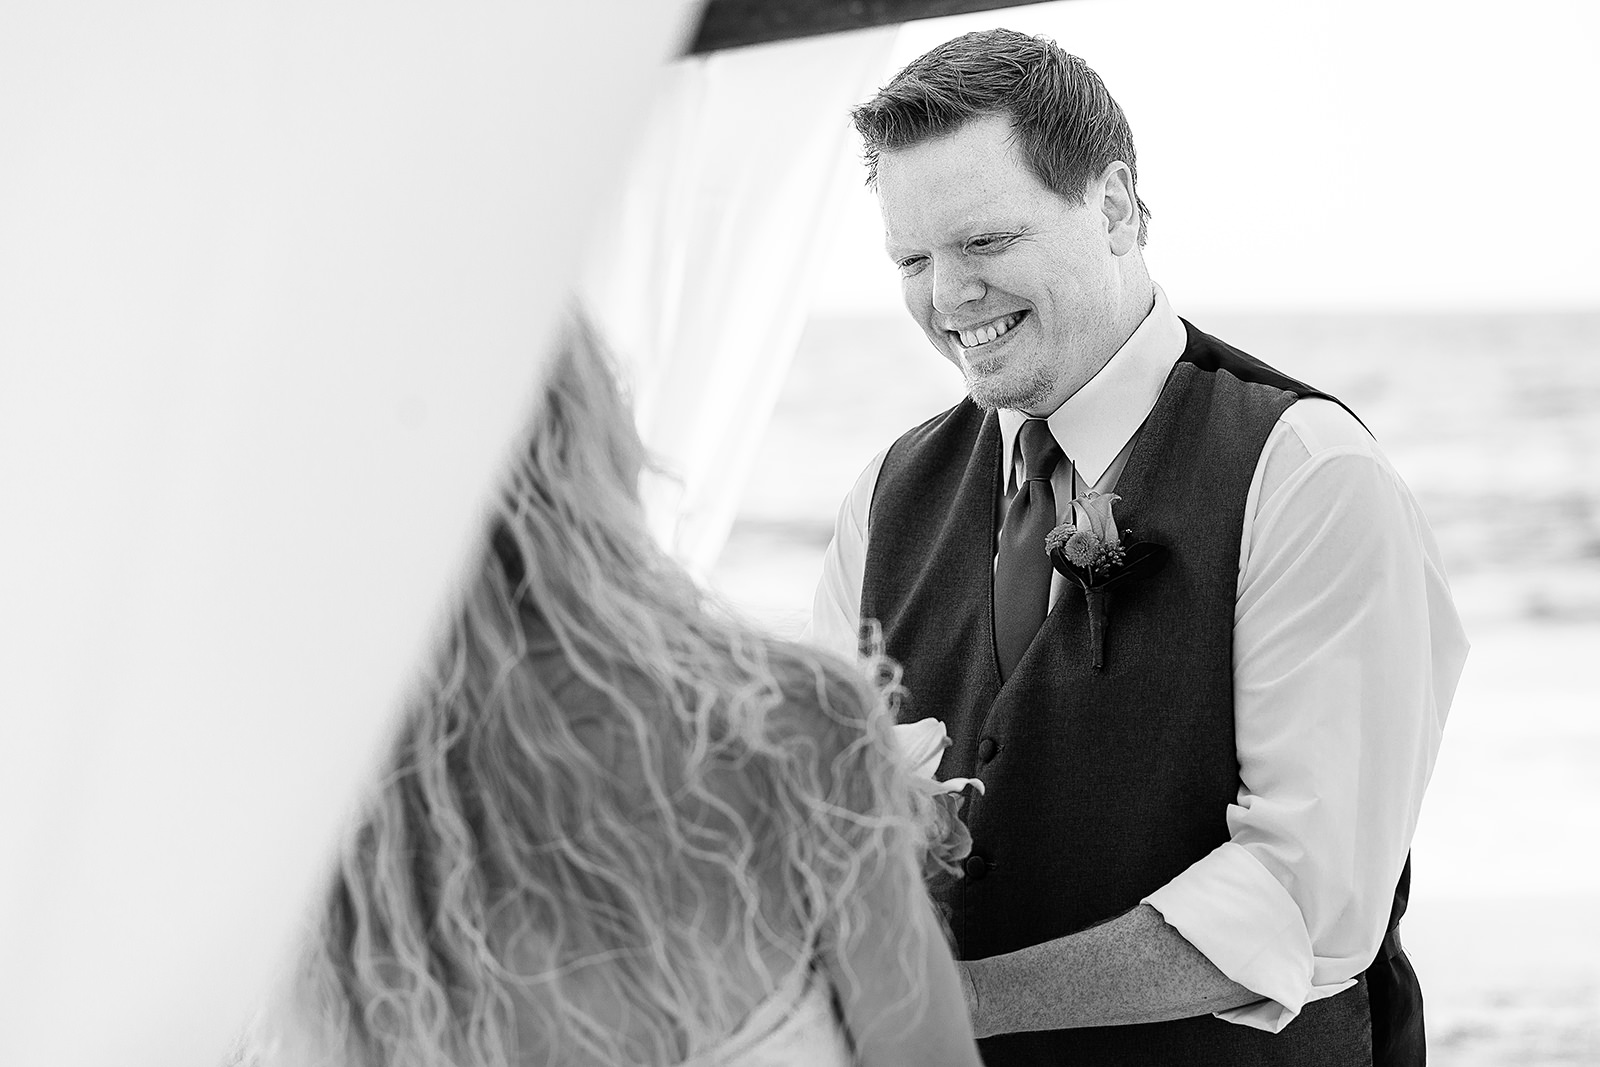 Groom smiling at bride during ceremony on the beach